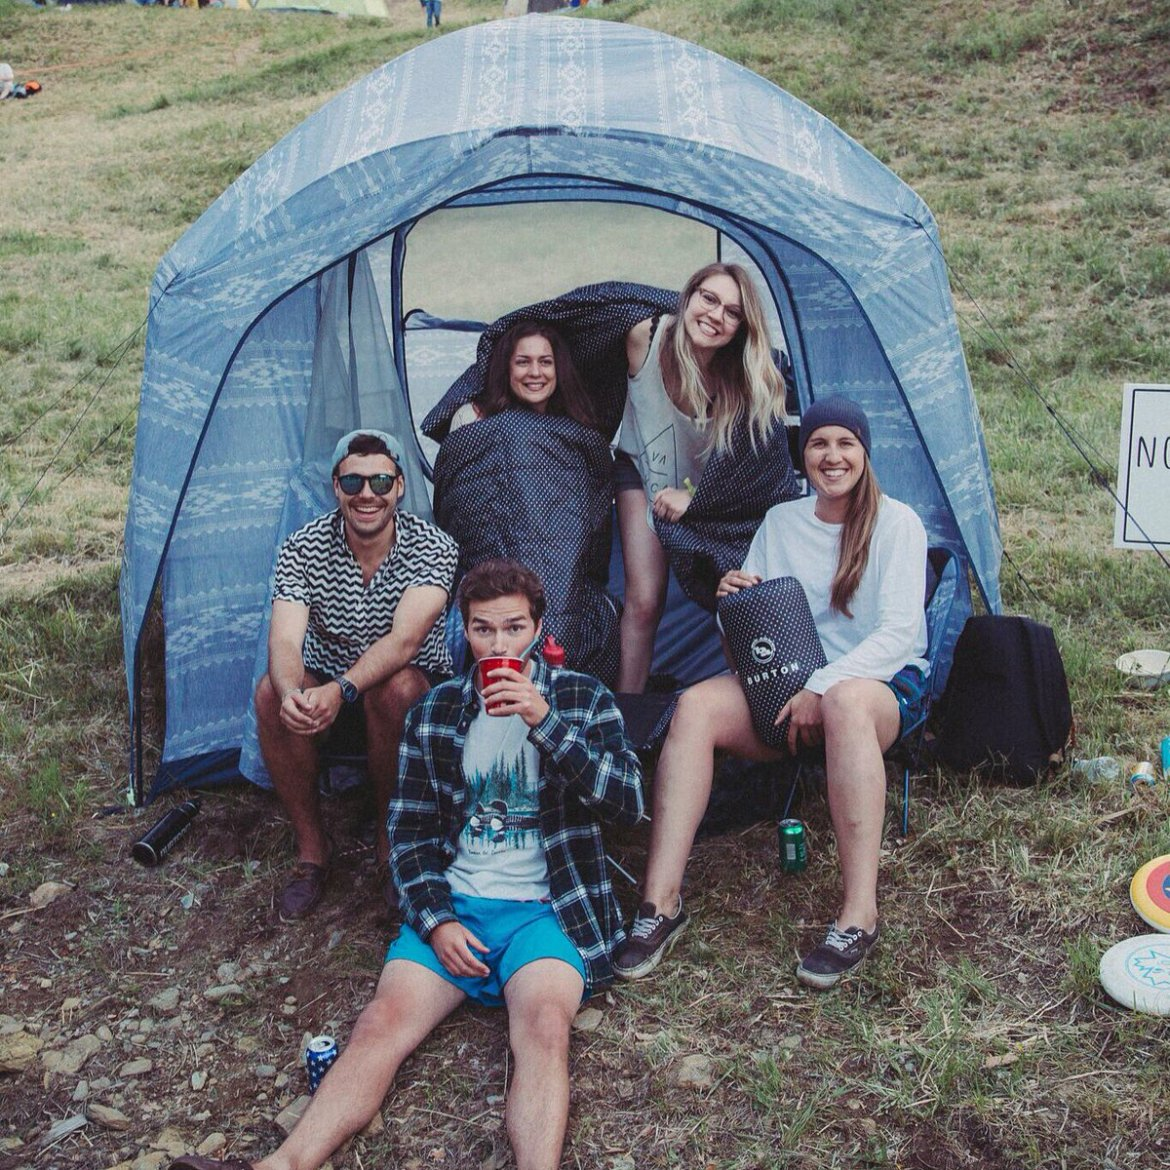 We teamed up with @Leafly to give away a camp setup at the @frendlyg. Congrats to this crew: